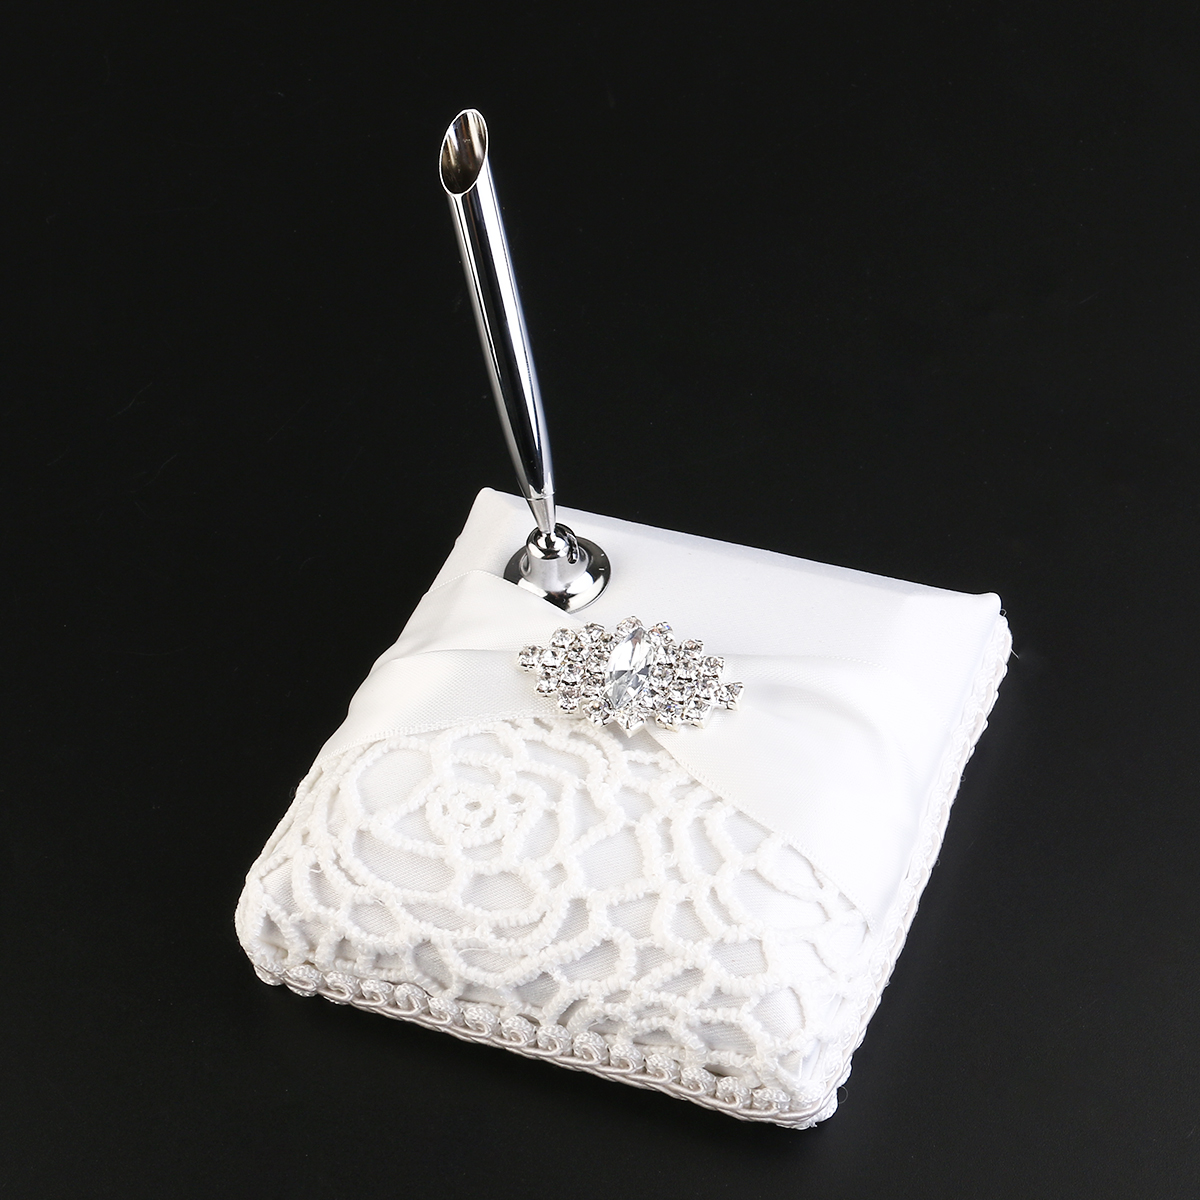 Table Pen With Holder For Wedding Signature Gift Package Festive & Party Supplies